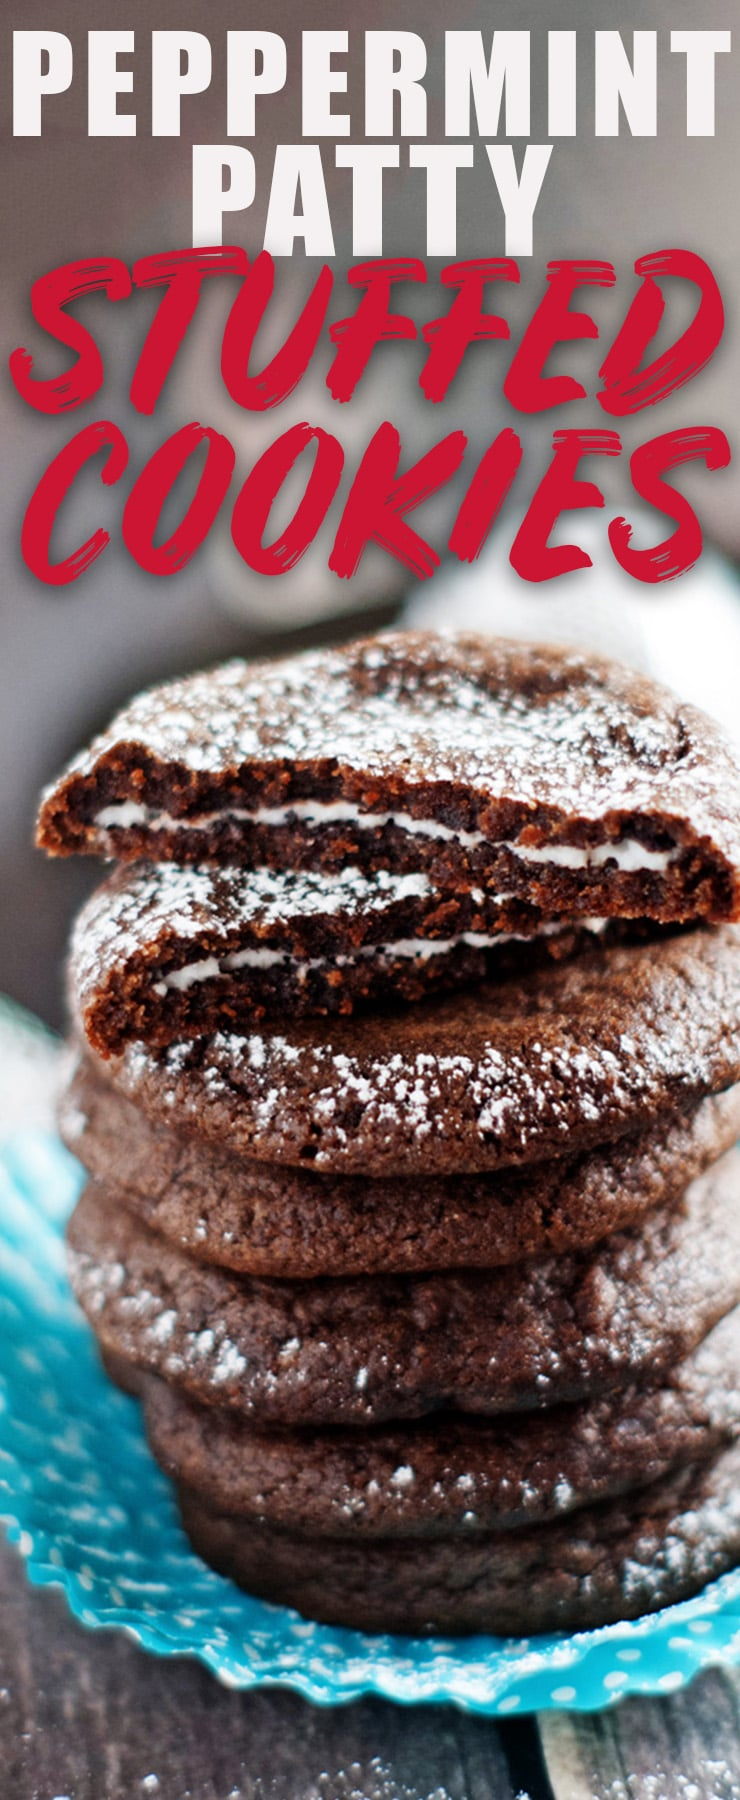 These chewy chocolate cookies are stuffed with peppermint patties! Grab the easy recipe now because these disappear first from every Christmas Cookie Plate I put them on! #cookies #christmas #peppermint #chocolate